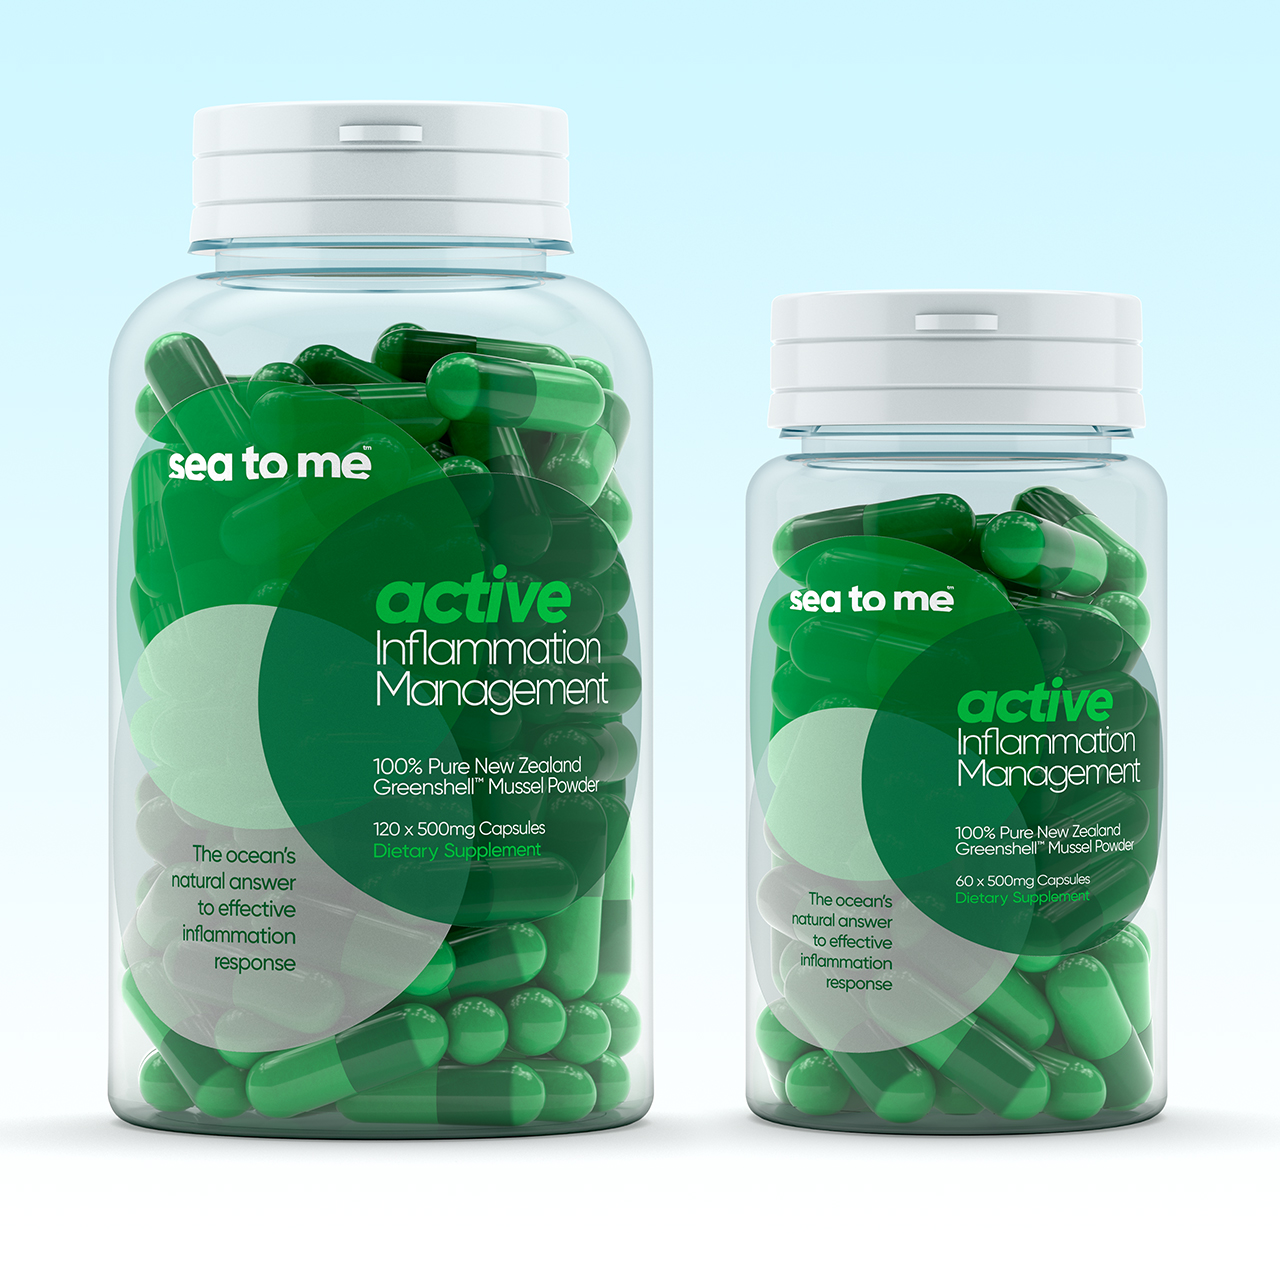 3D render of sea to me's greenshell mussel powder capsules